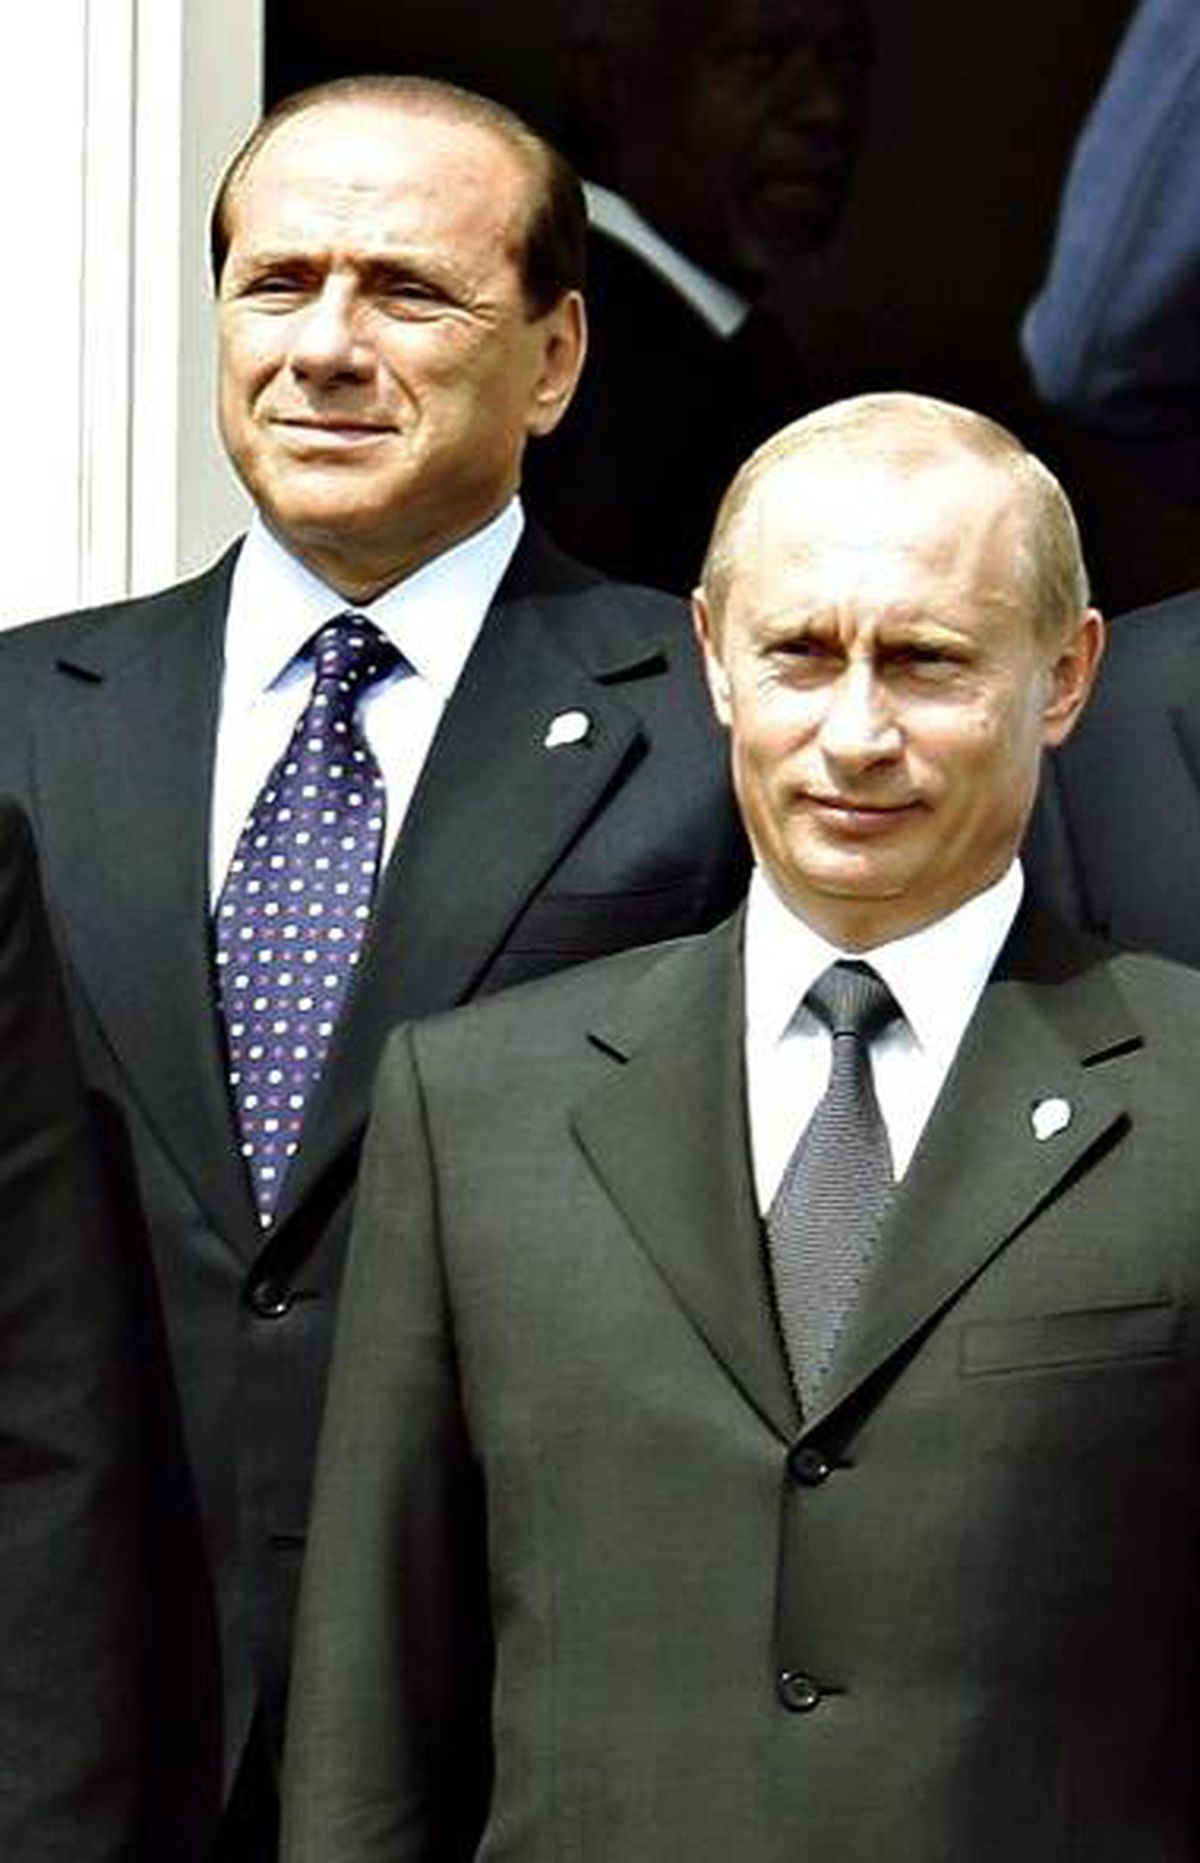 RUSSIA/ITALY: The New York Times said another batch of documents raised questions about Italian Prime Minister Silvio Berlusconi and his relationship with Russian Prime Minister Vladimir Putin. One cable said Mr. Berlusconi 'appears increasingly to be the mouthpiece of Putin' in Europe, the paper reported.